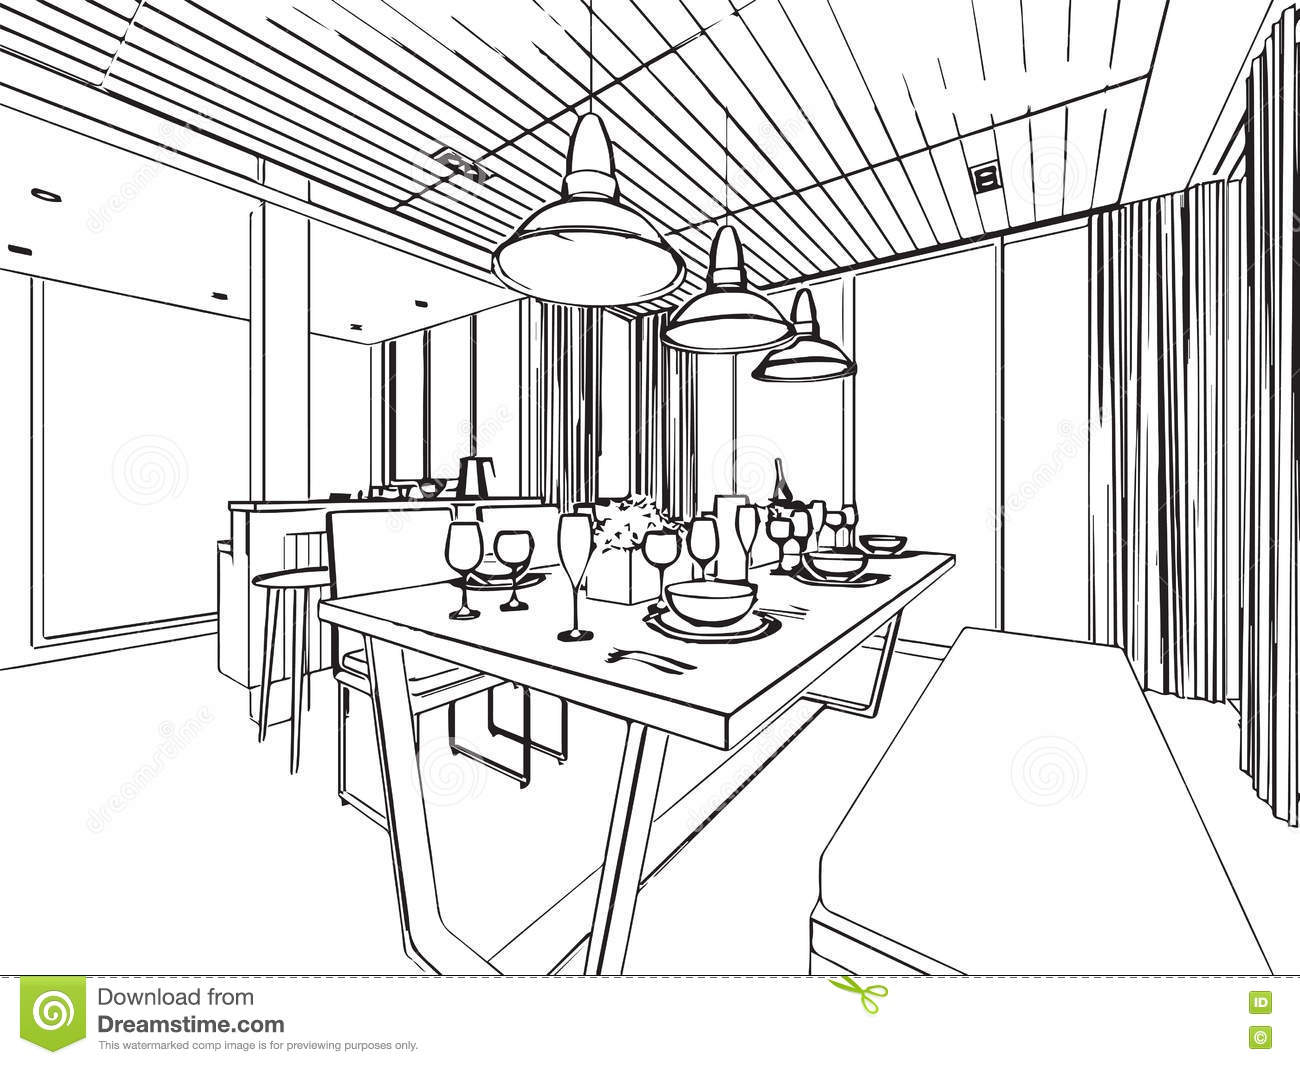 Outline Sketch Drawing Interior Perspective Of House Stock Vector - Illustration of wire